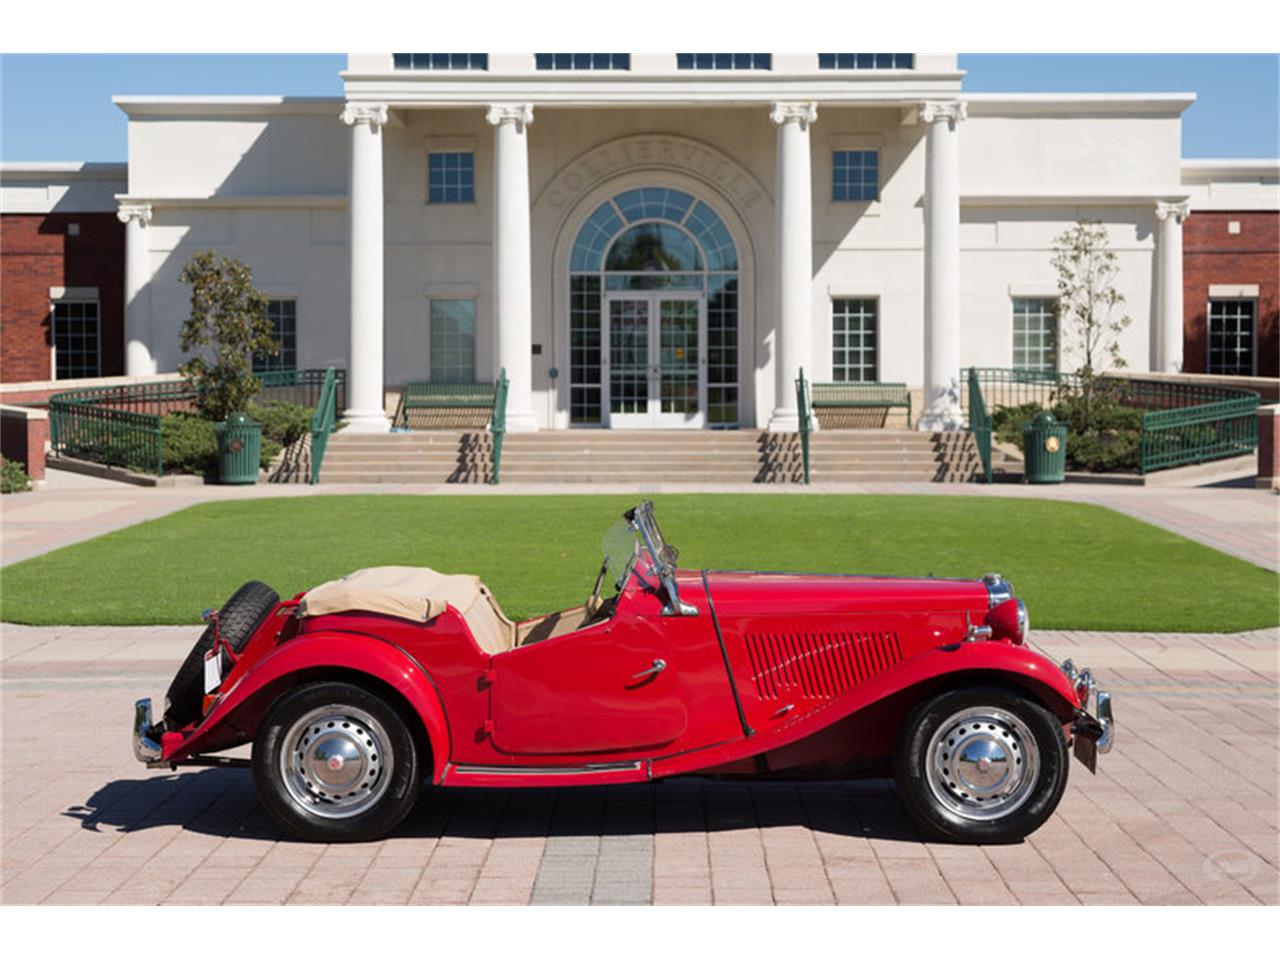 Large Picture of Classic '51 MG TD located in Collierville Tennessee - $27,900.00 - JKEU